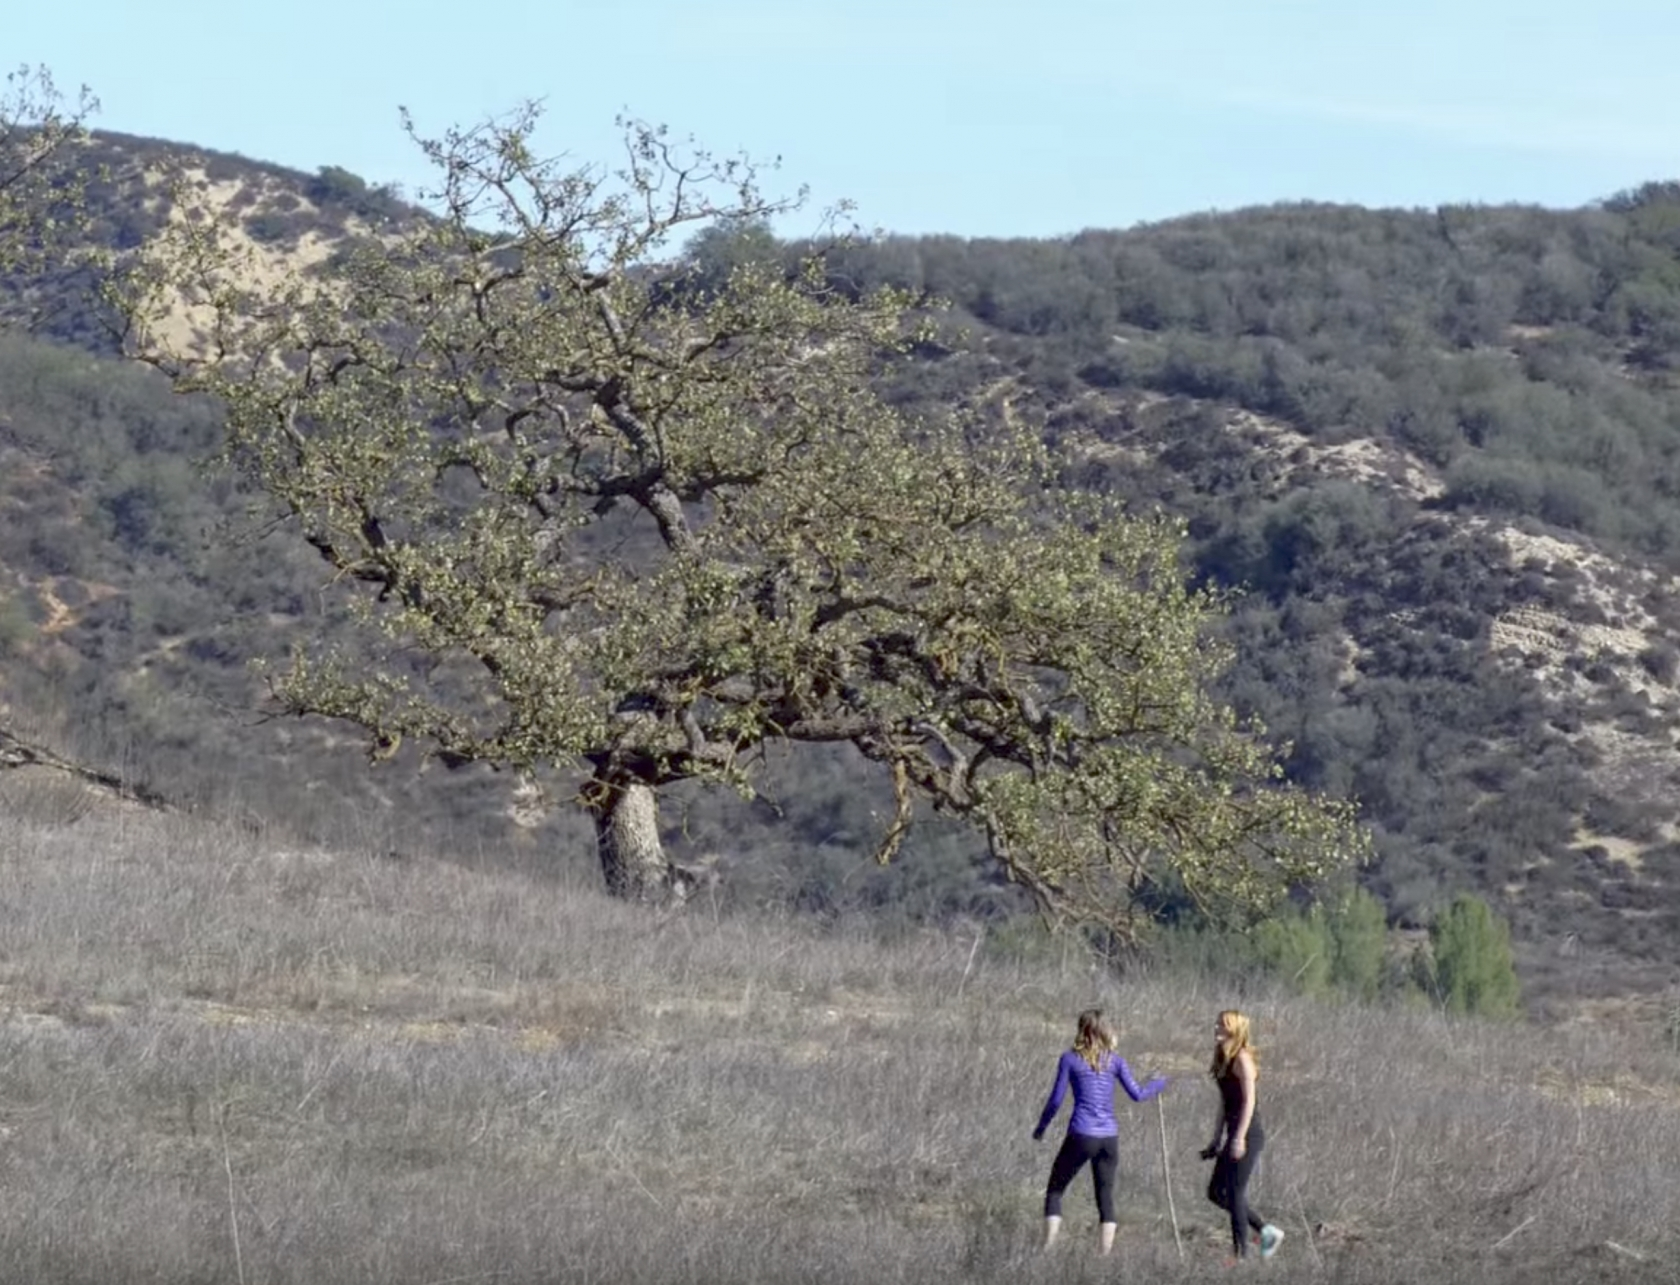 Bella Thorne and friend hiking through the Santa Monica Mountains National Recreation Area